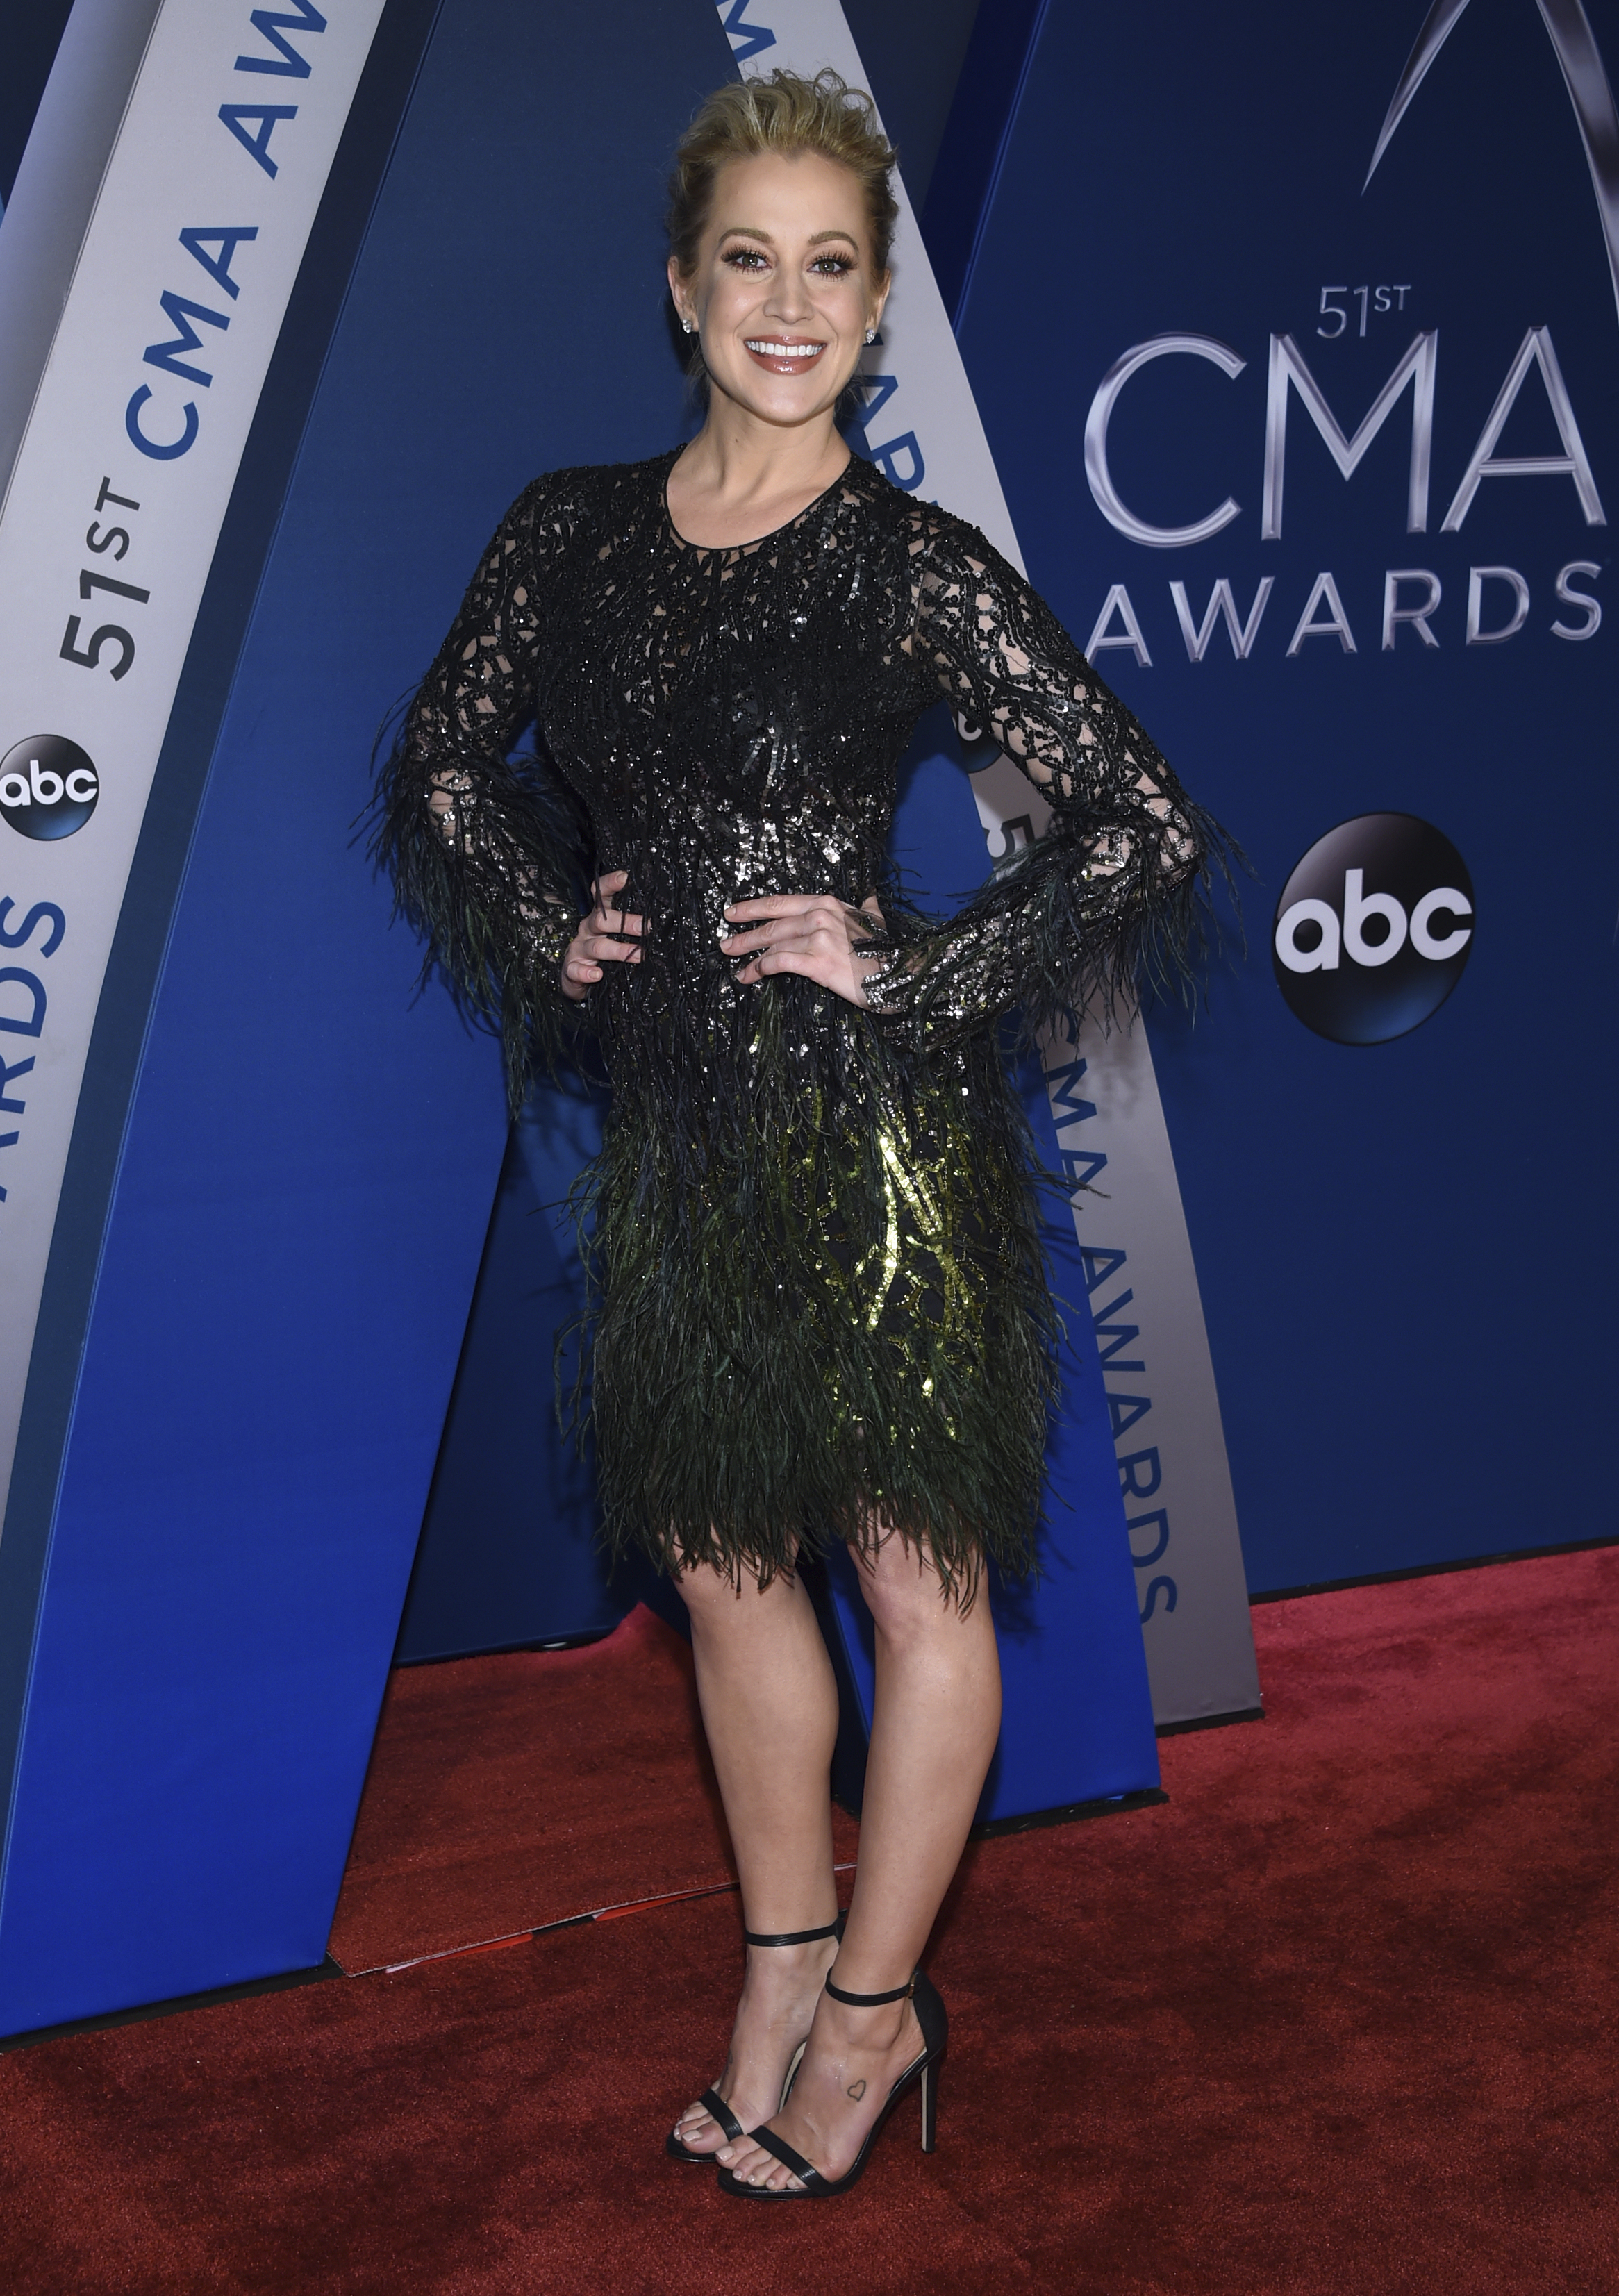 "<div class=""meta image-caption""><div class=""origin-logo origin-image none""><span>none</span></div><span class=""caption-text"">Kellie Pickler arrives at the 51st annual CMA Awards on Wednesday, Nov. 8, 2017, in Nashville, Tenn. (Evan Agostini/Invision/AP)</span></div>"